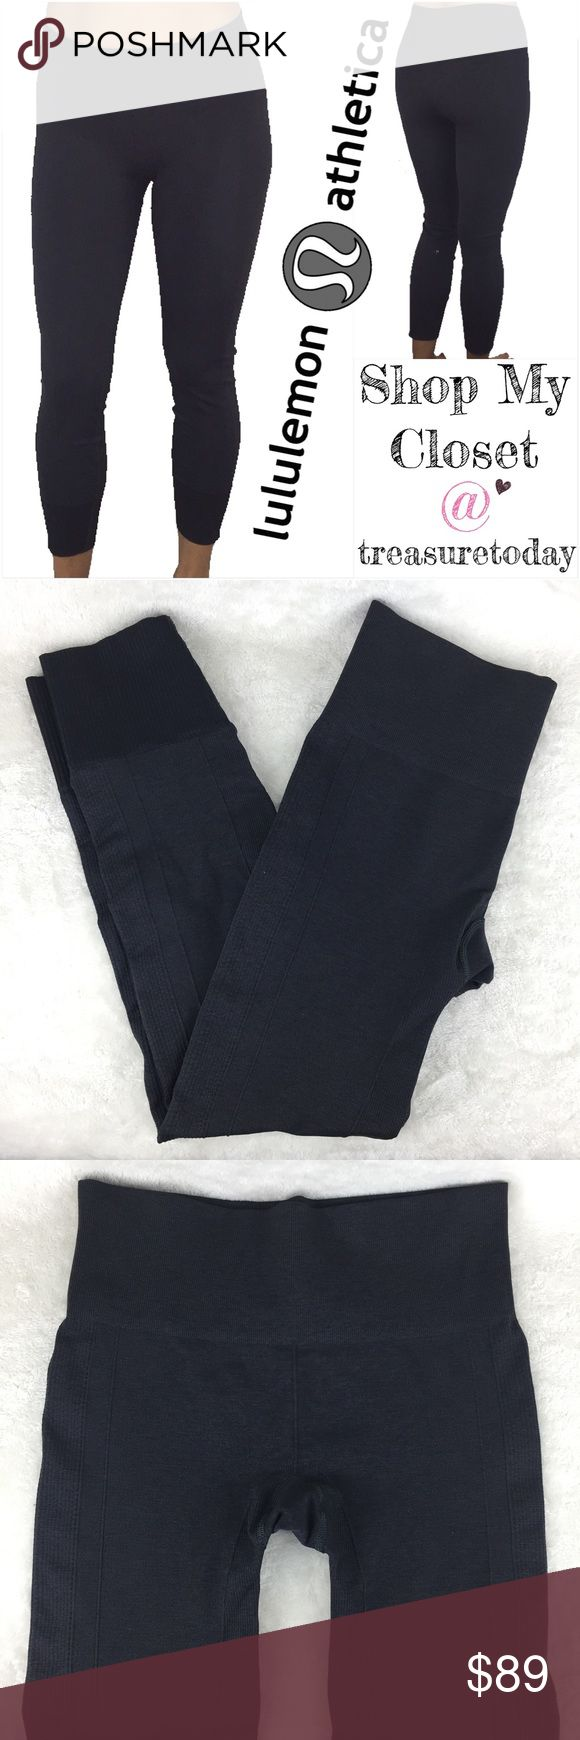 Lululemon Athletica Ebb To The Street Leggings Re- posh! Dark Gray color. Thick material- These have good amount of control and have a slimming effect. Great pre owned condition. Size tag was cut off but these fit best size 4 or 6. SUPER RARE! Bundle 2 or more items to get discount 💖 lululemon athletica Pants Leggings